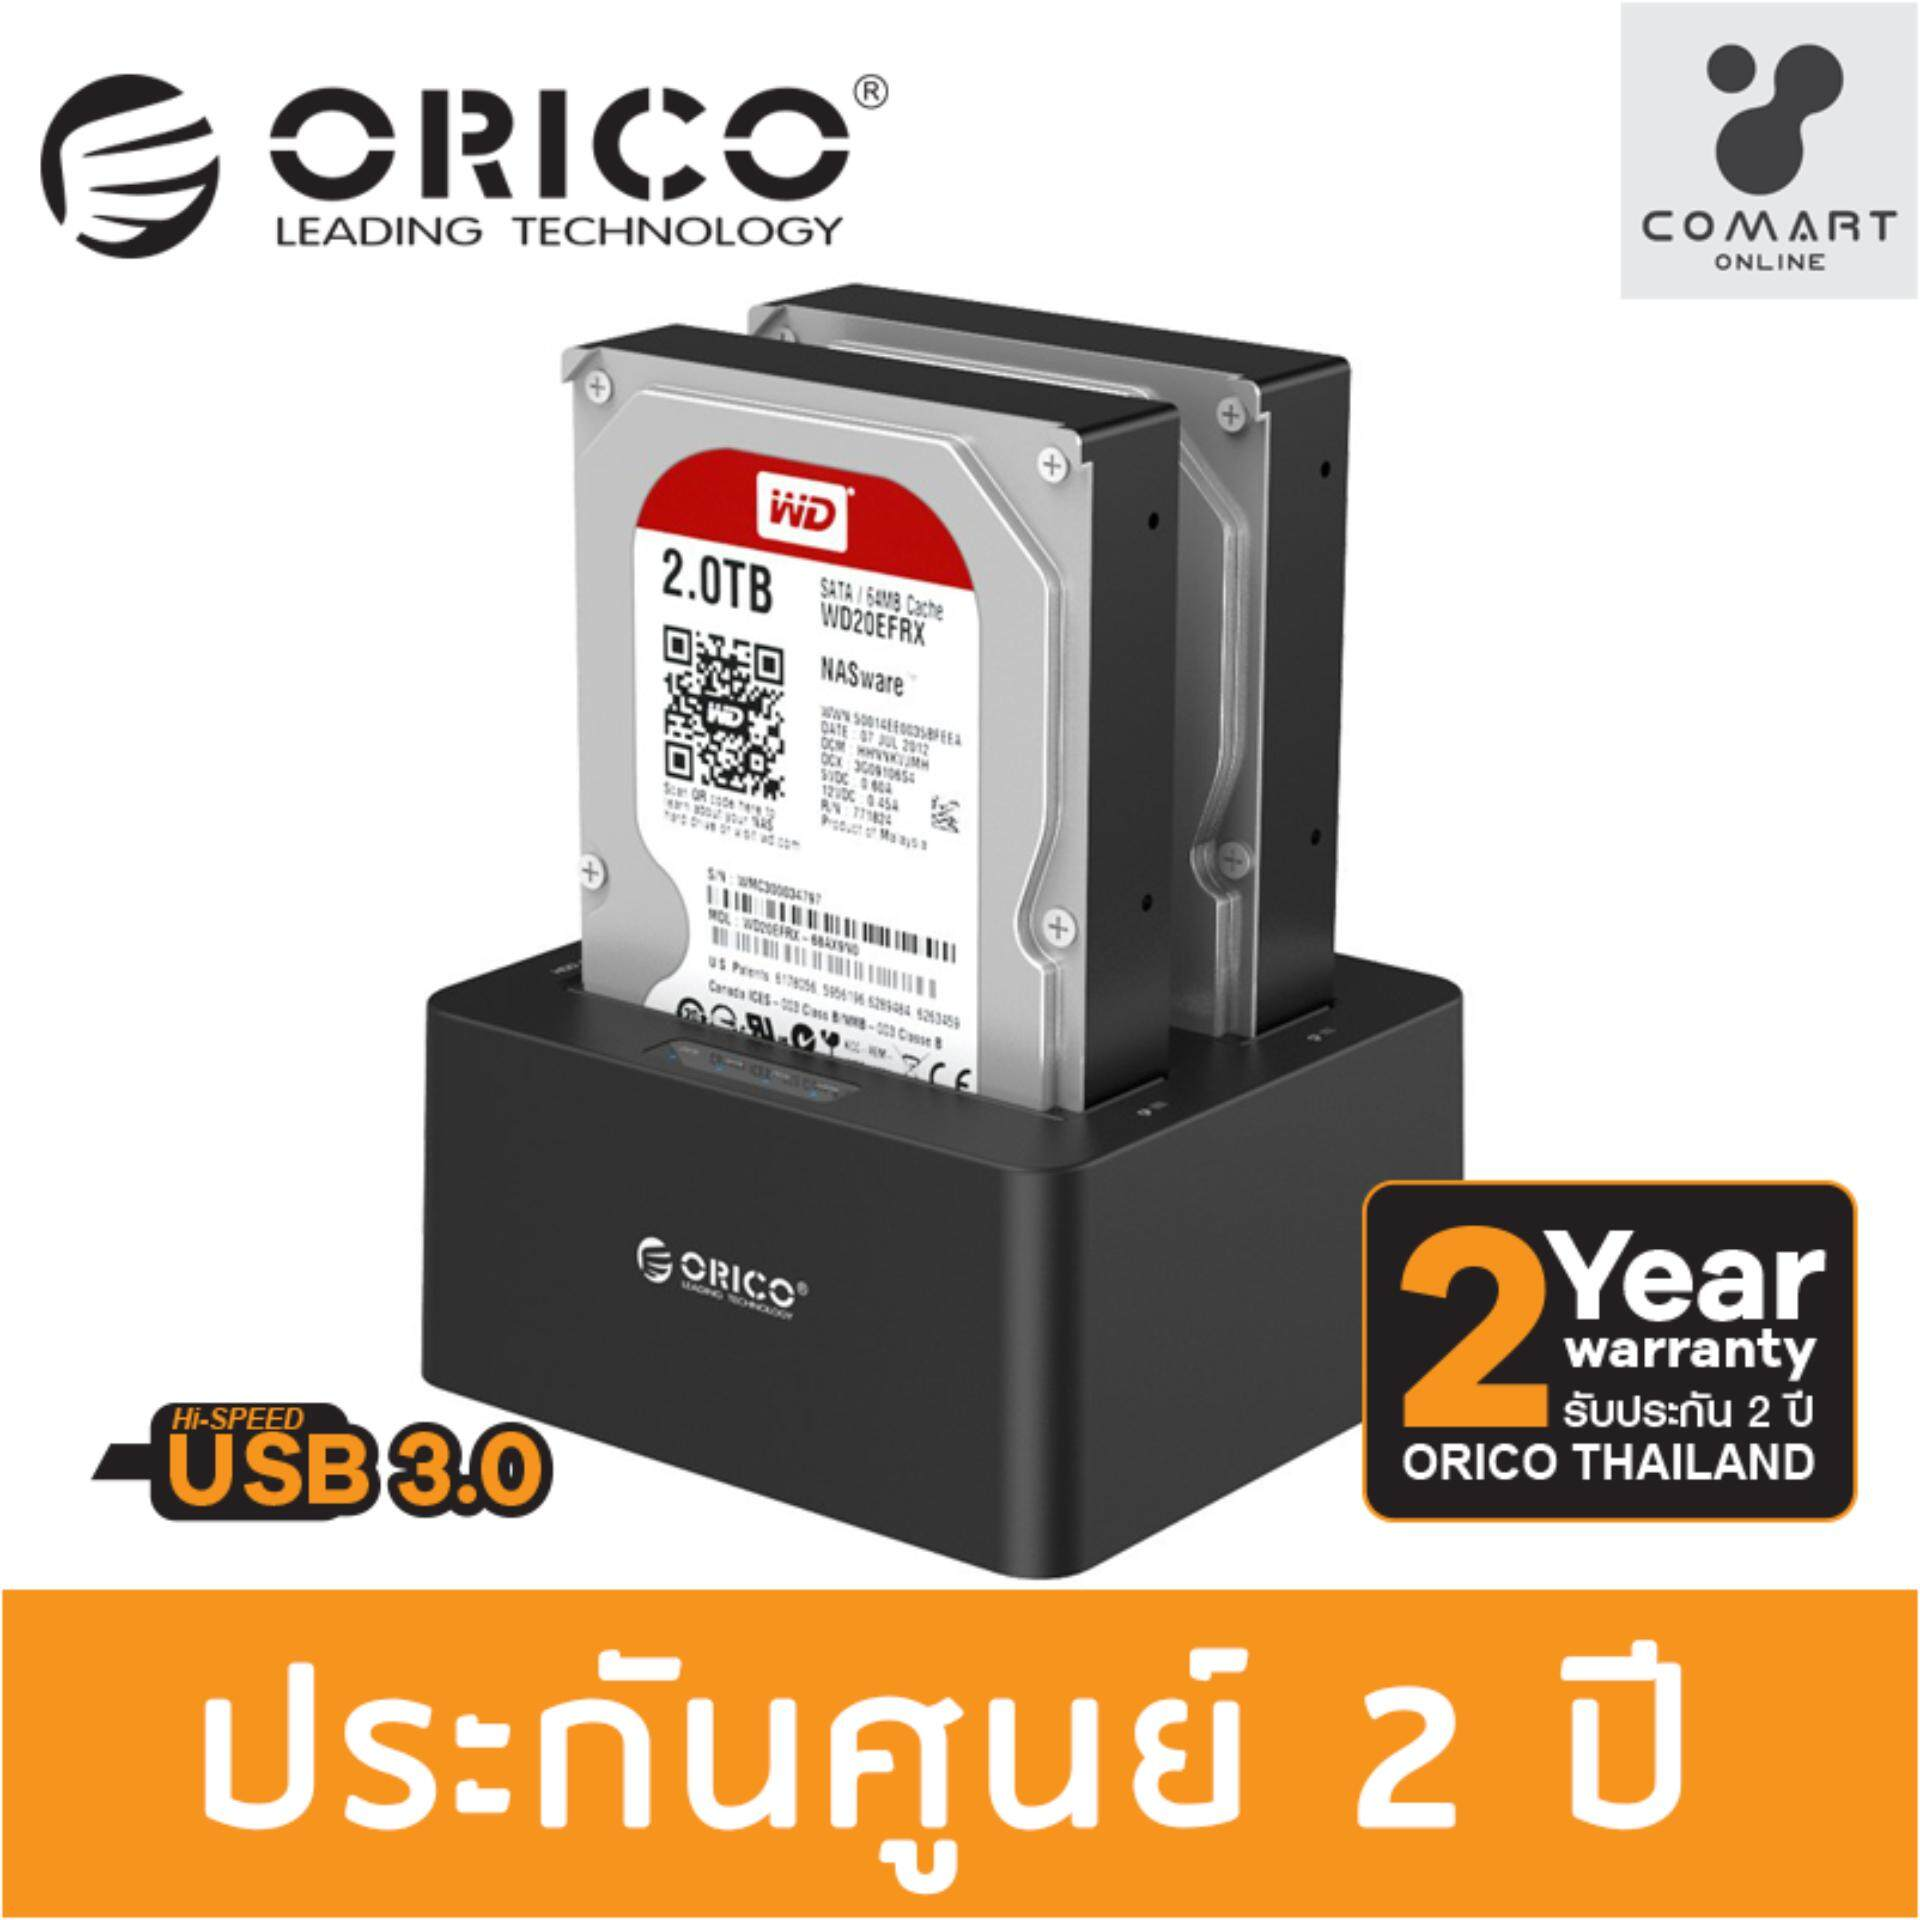 Sell Orico External Harddisk Cheapest Best Quality Th Store Bsc35 05 Aluminum 25 35 Inch Hard Drive Protection Box Thb 1790 6629us3 C Hdd